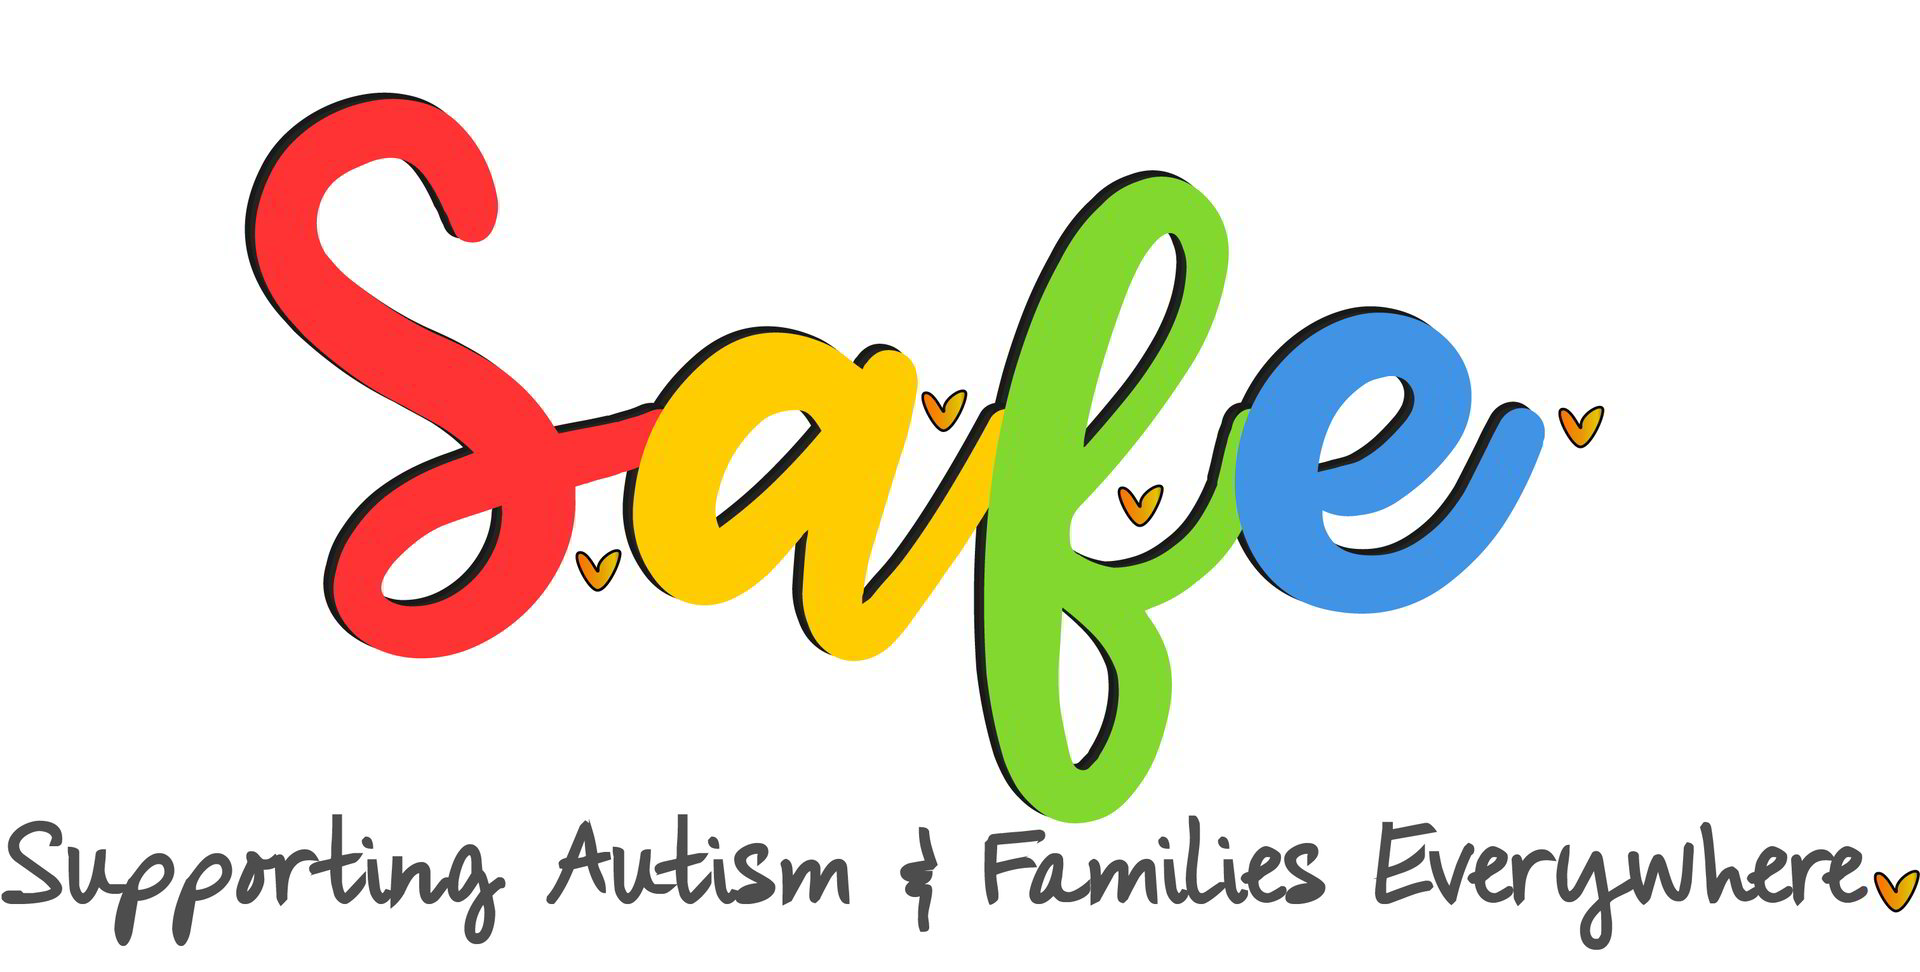 S.A.F.E.  -  Supporting Families with Austism Everywhere